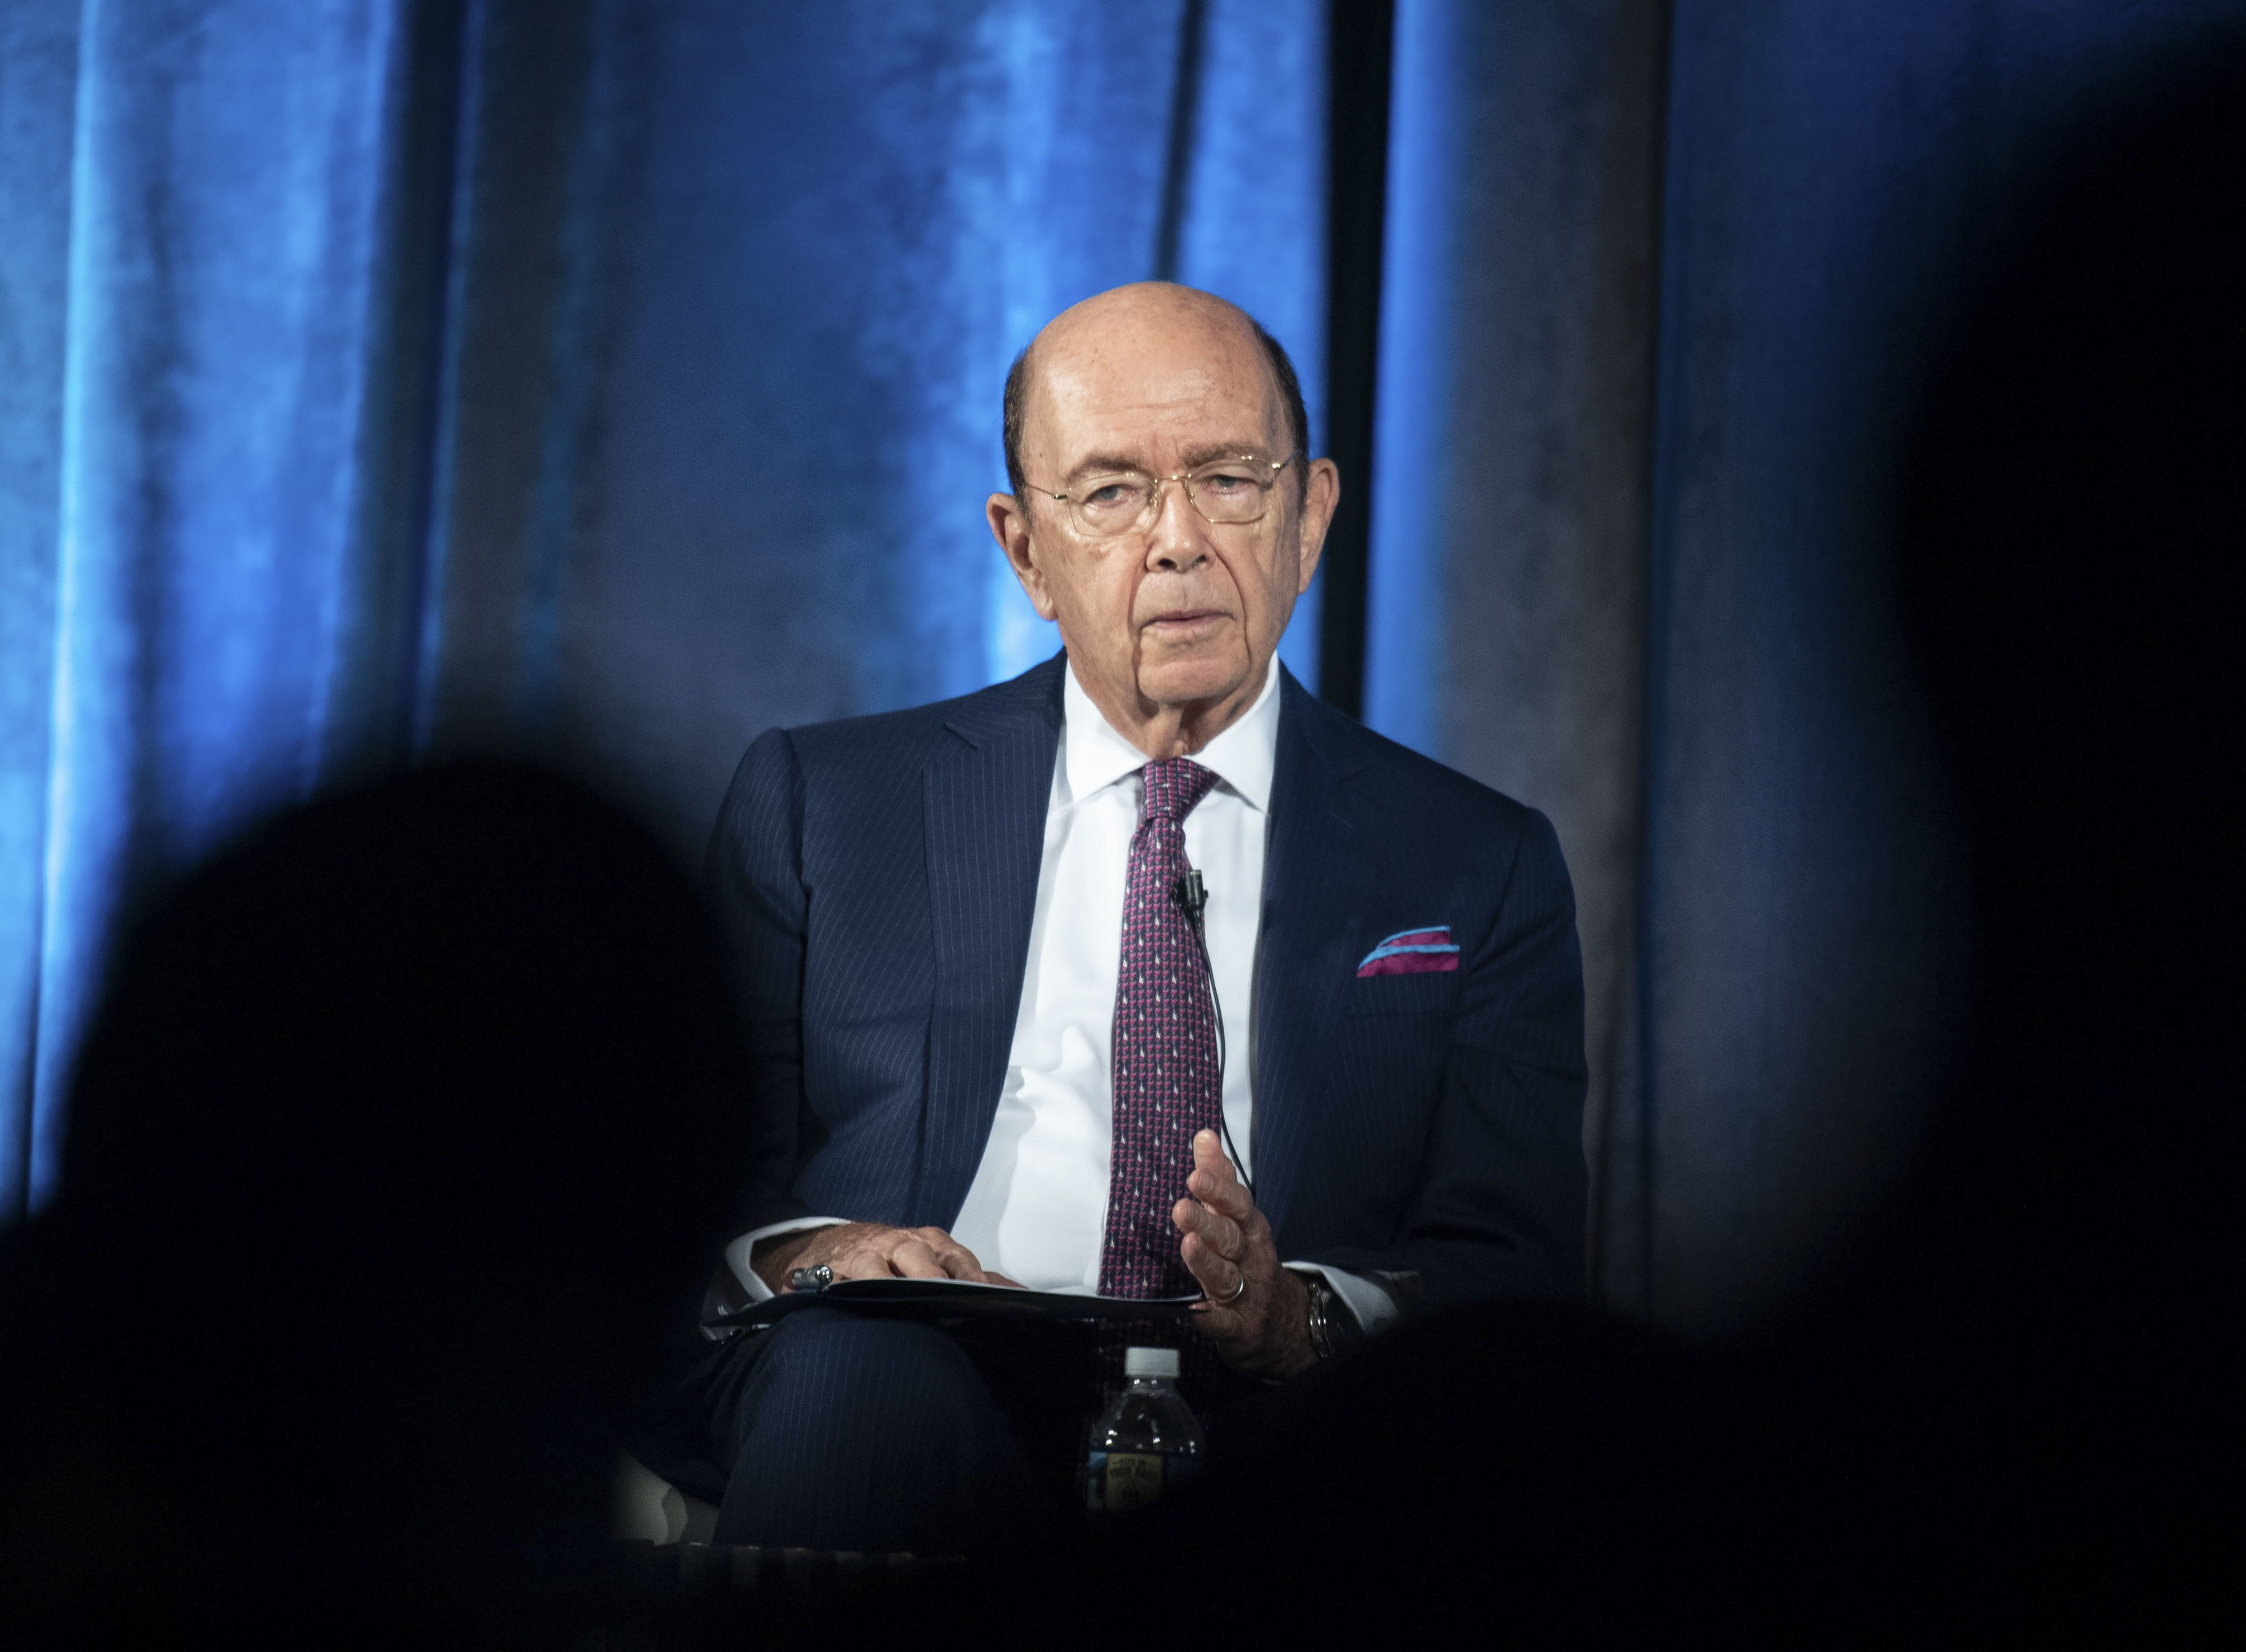 US Commerce Secretary Wilbur Ross addresses the Indo-Pacific Business Forum at the US Chamber of Commerce in Washington, DC, on July 30, 2018. (Photo by NICHOLAS KAMM / AFP)        (Photo credit should read NICHOLAS KAMM/AFP/Getty Images)